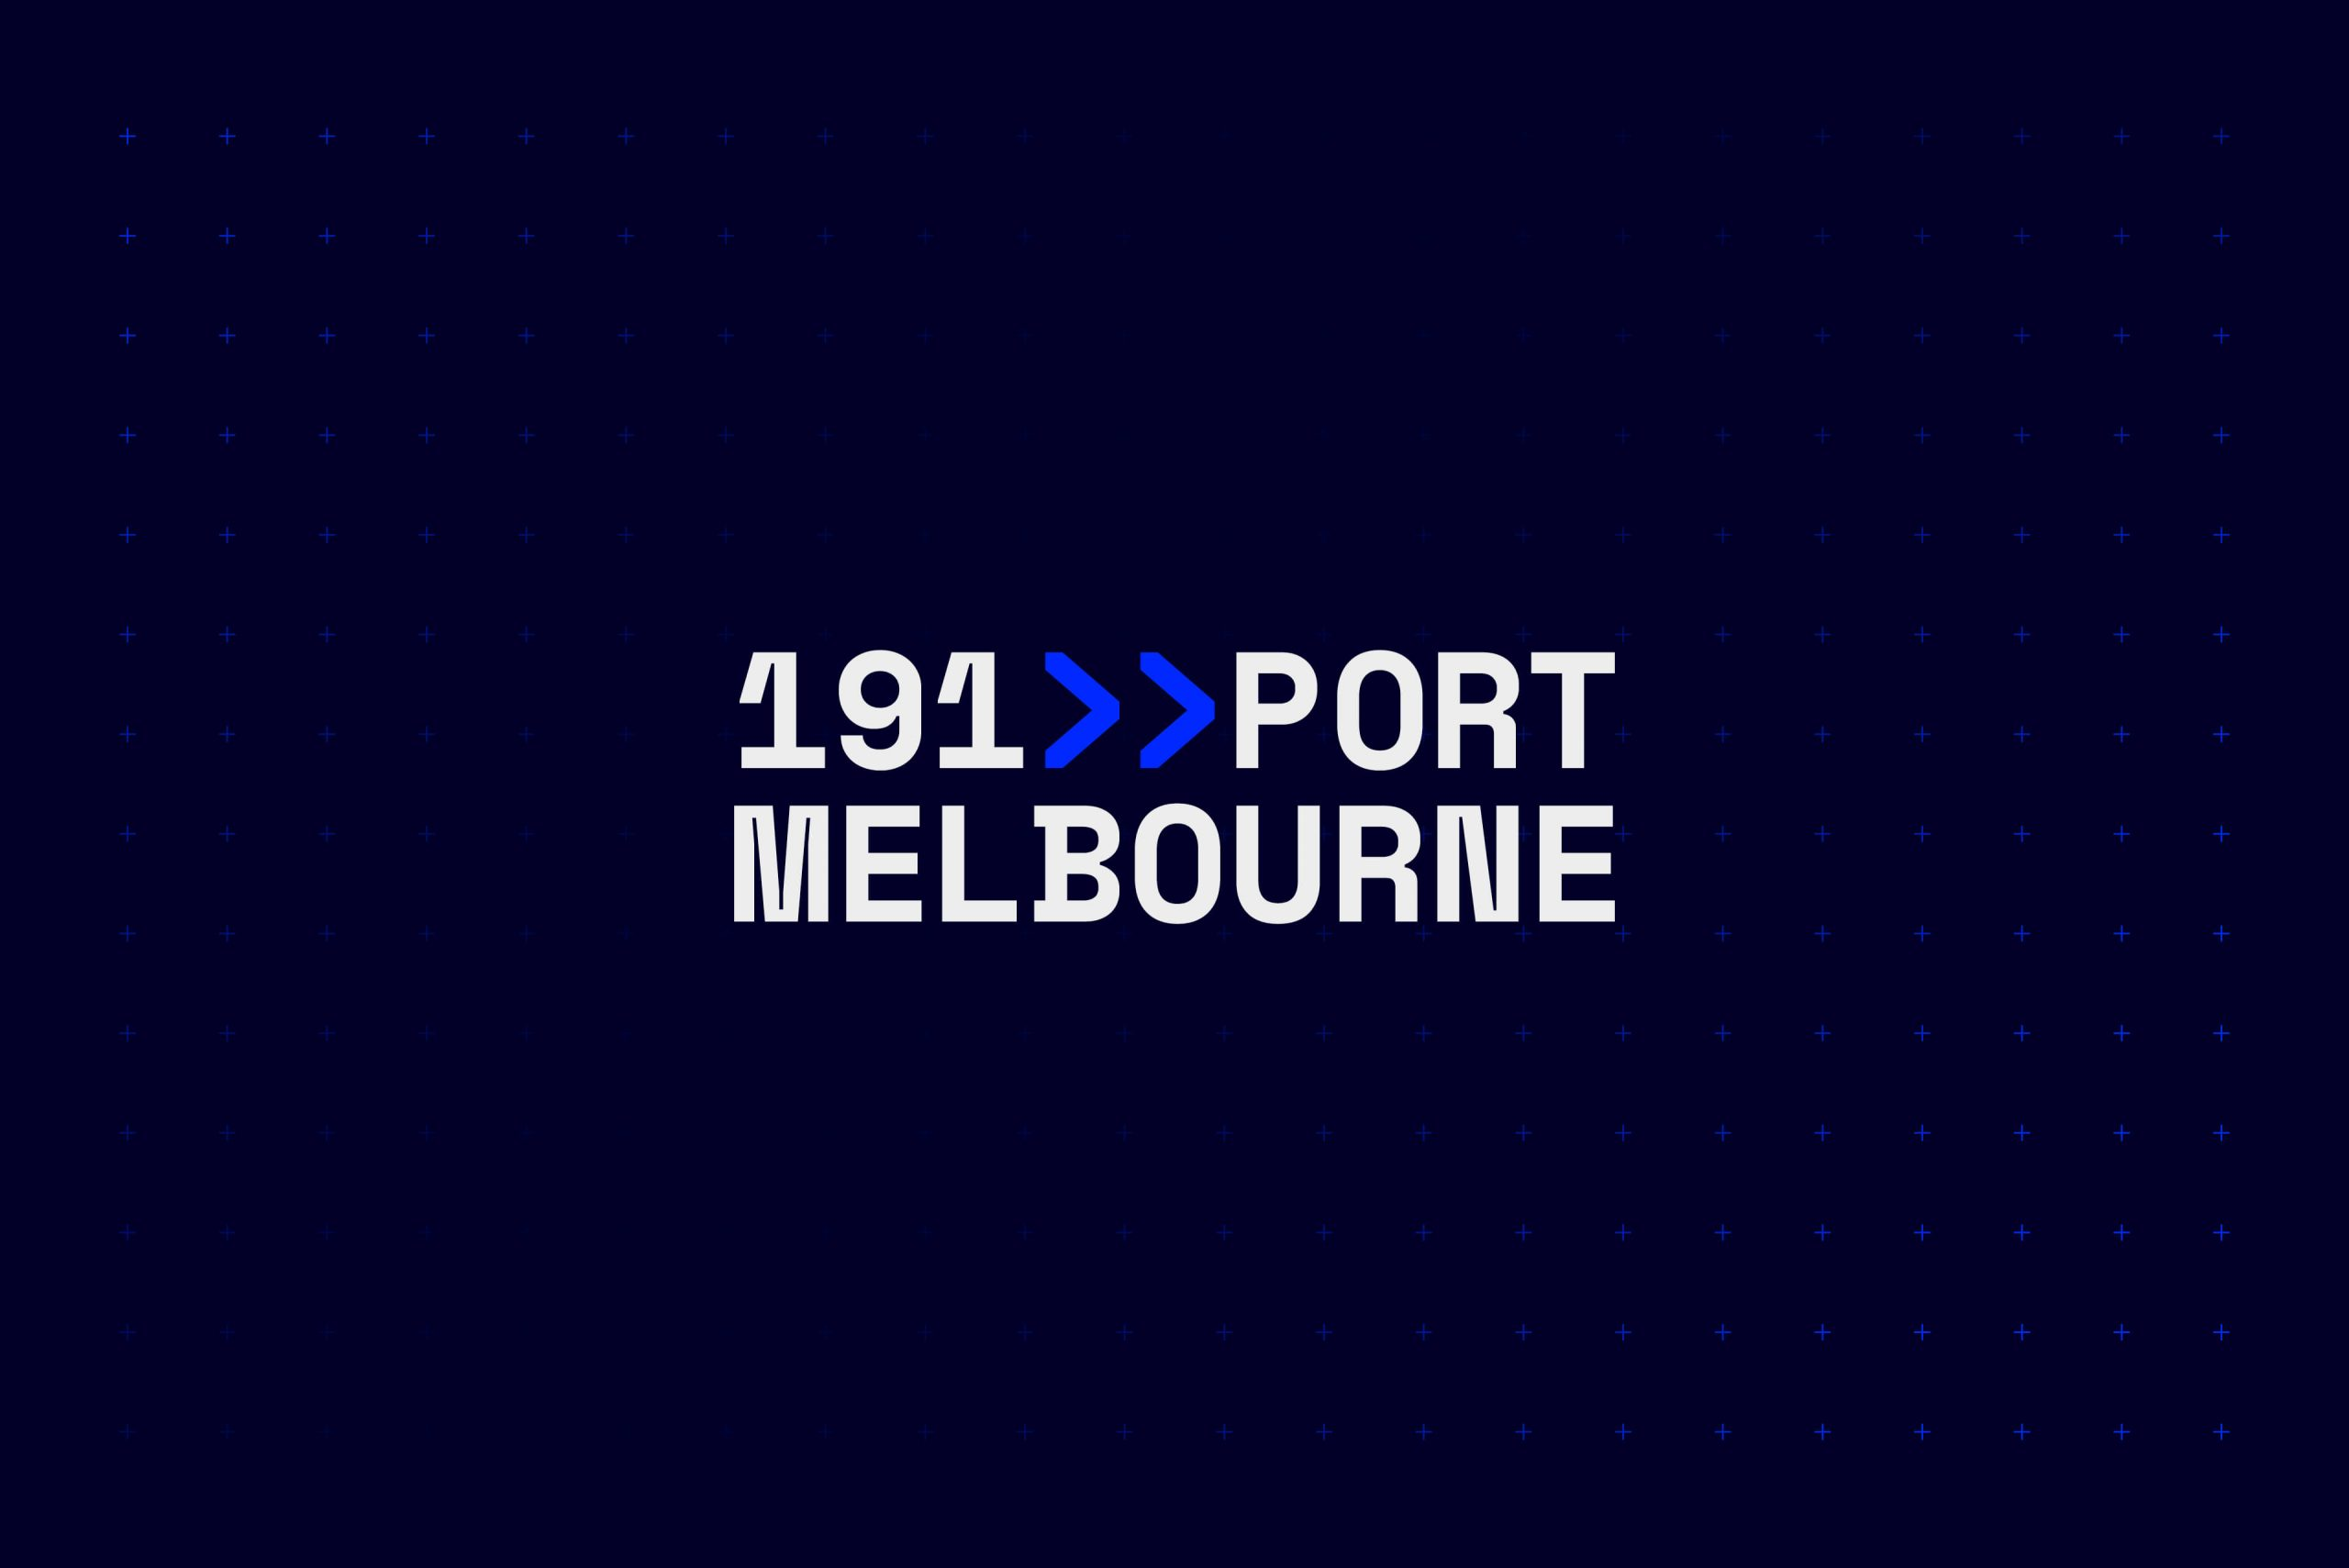 191 Port Melbourne - Property Brand Identity - Logotype & Colour Palette 2